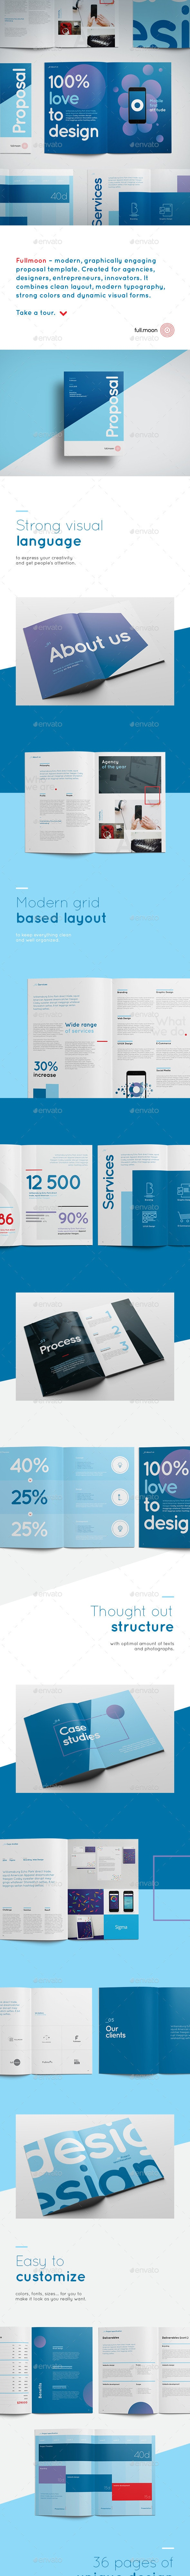 Fullmoon Creative Proposal - Proposals & Invoices Stationery